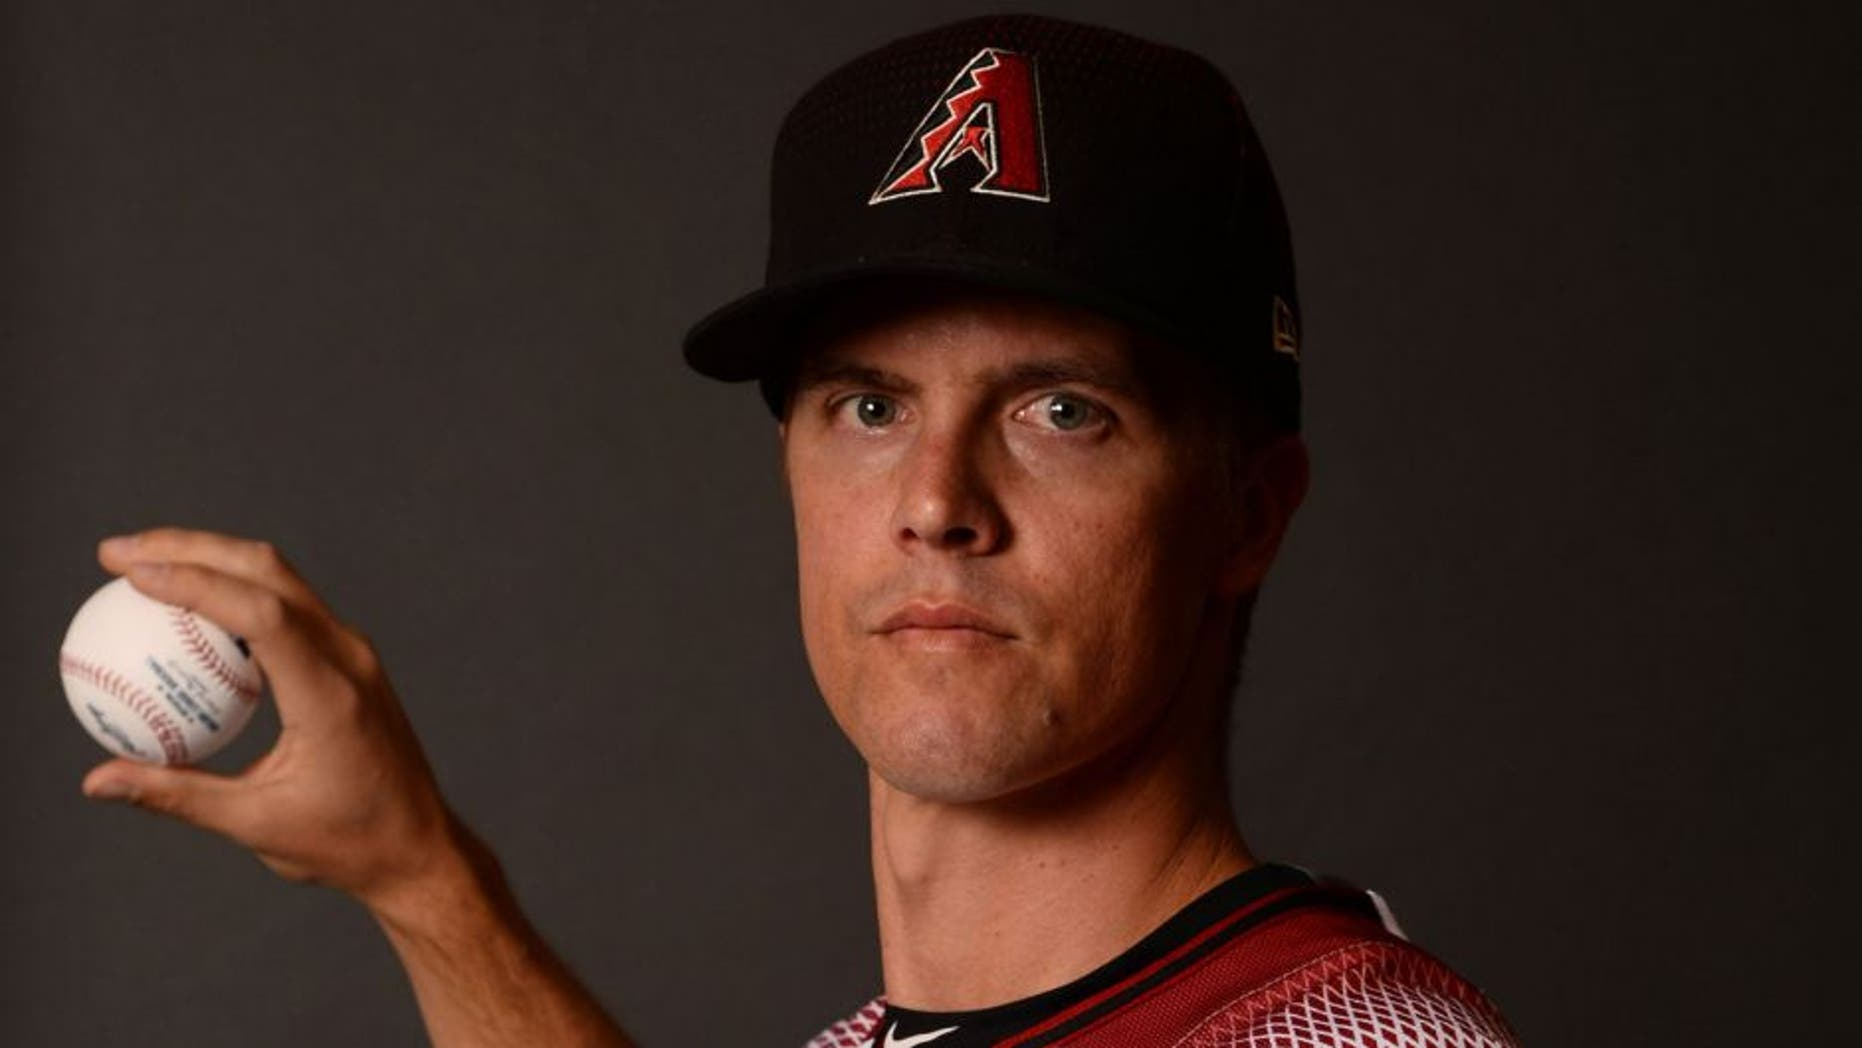 Feb 21, 2017; Scottsdale, AZ, USA; Arizona Diamondbacks starting pitcher Zack Greinke (21) poses for a photo during Spring Training Media Day at Salt River Fields at Talking Stick. Mandatory Credit: Joe Camporeale-USA TODAY Sports